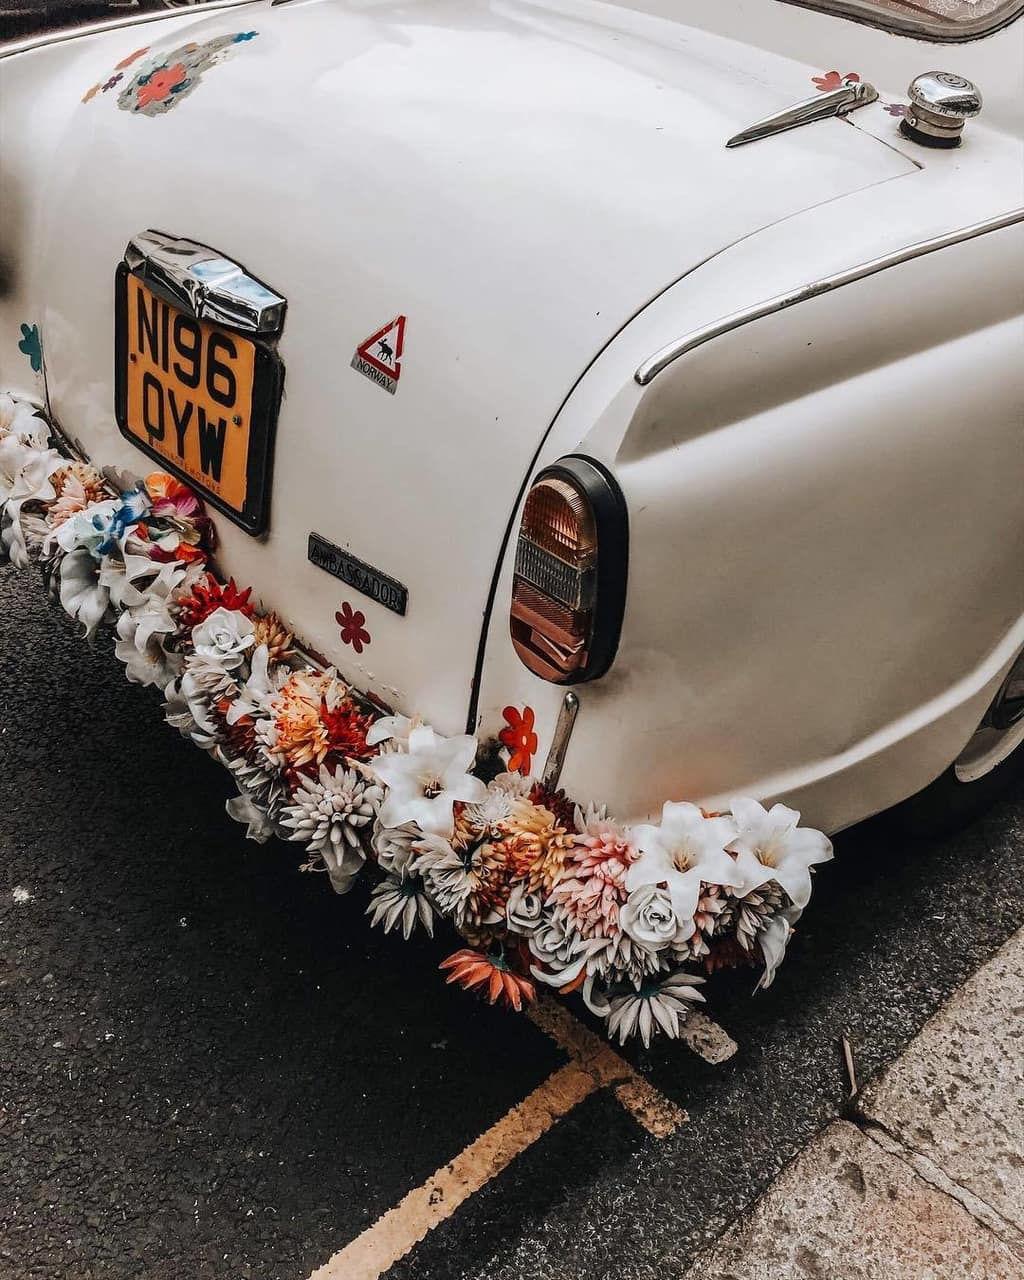 classic cars and likefairytales image